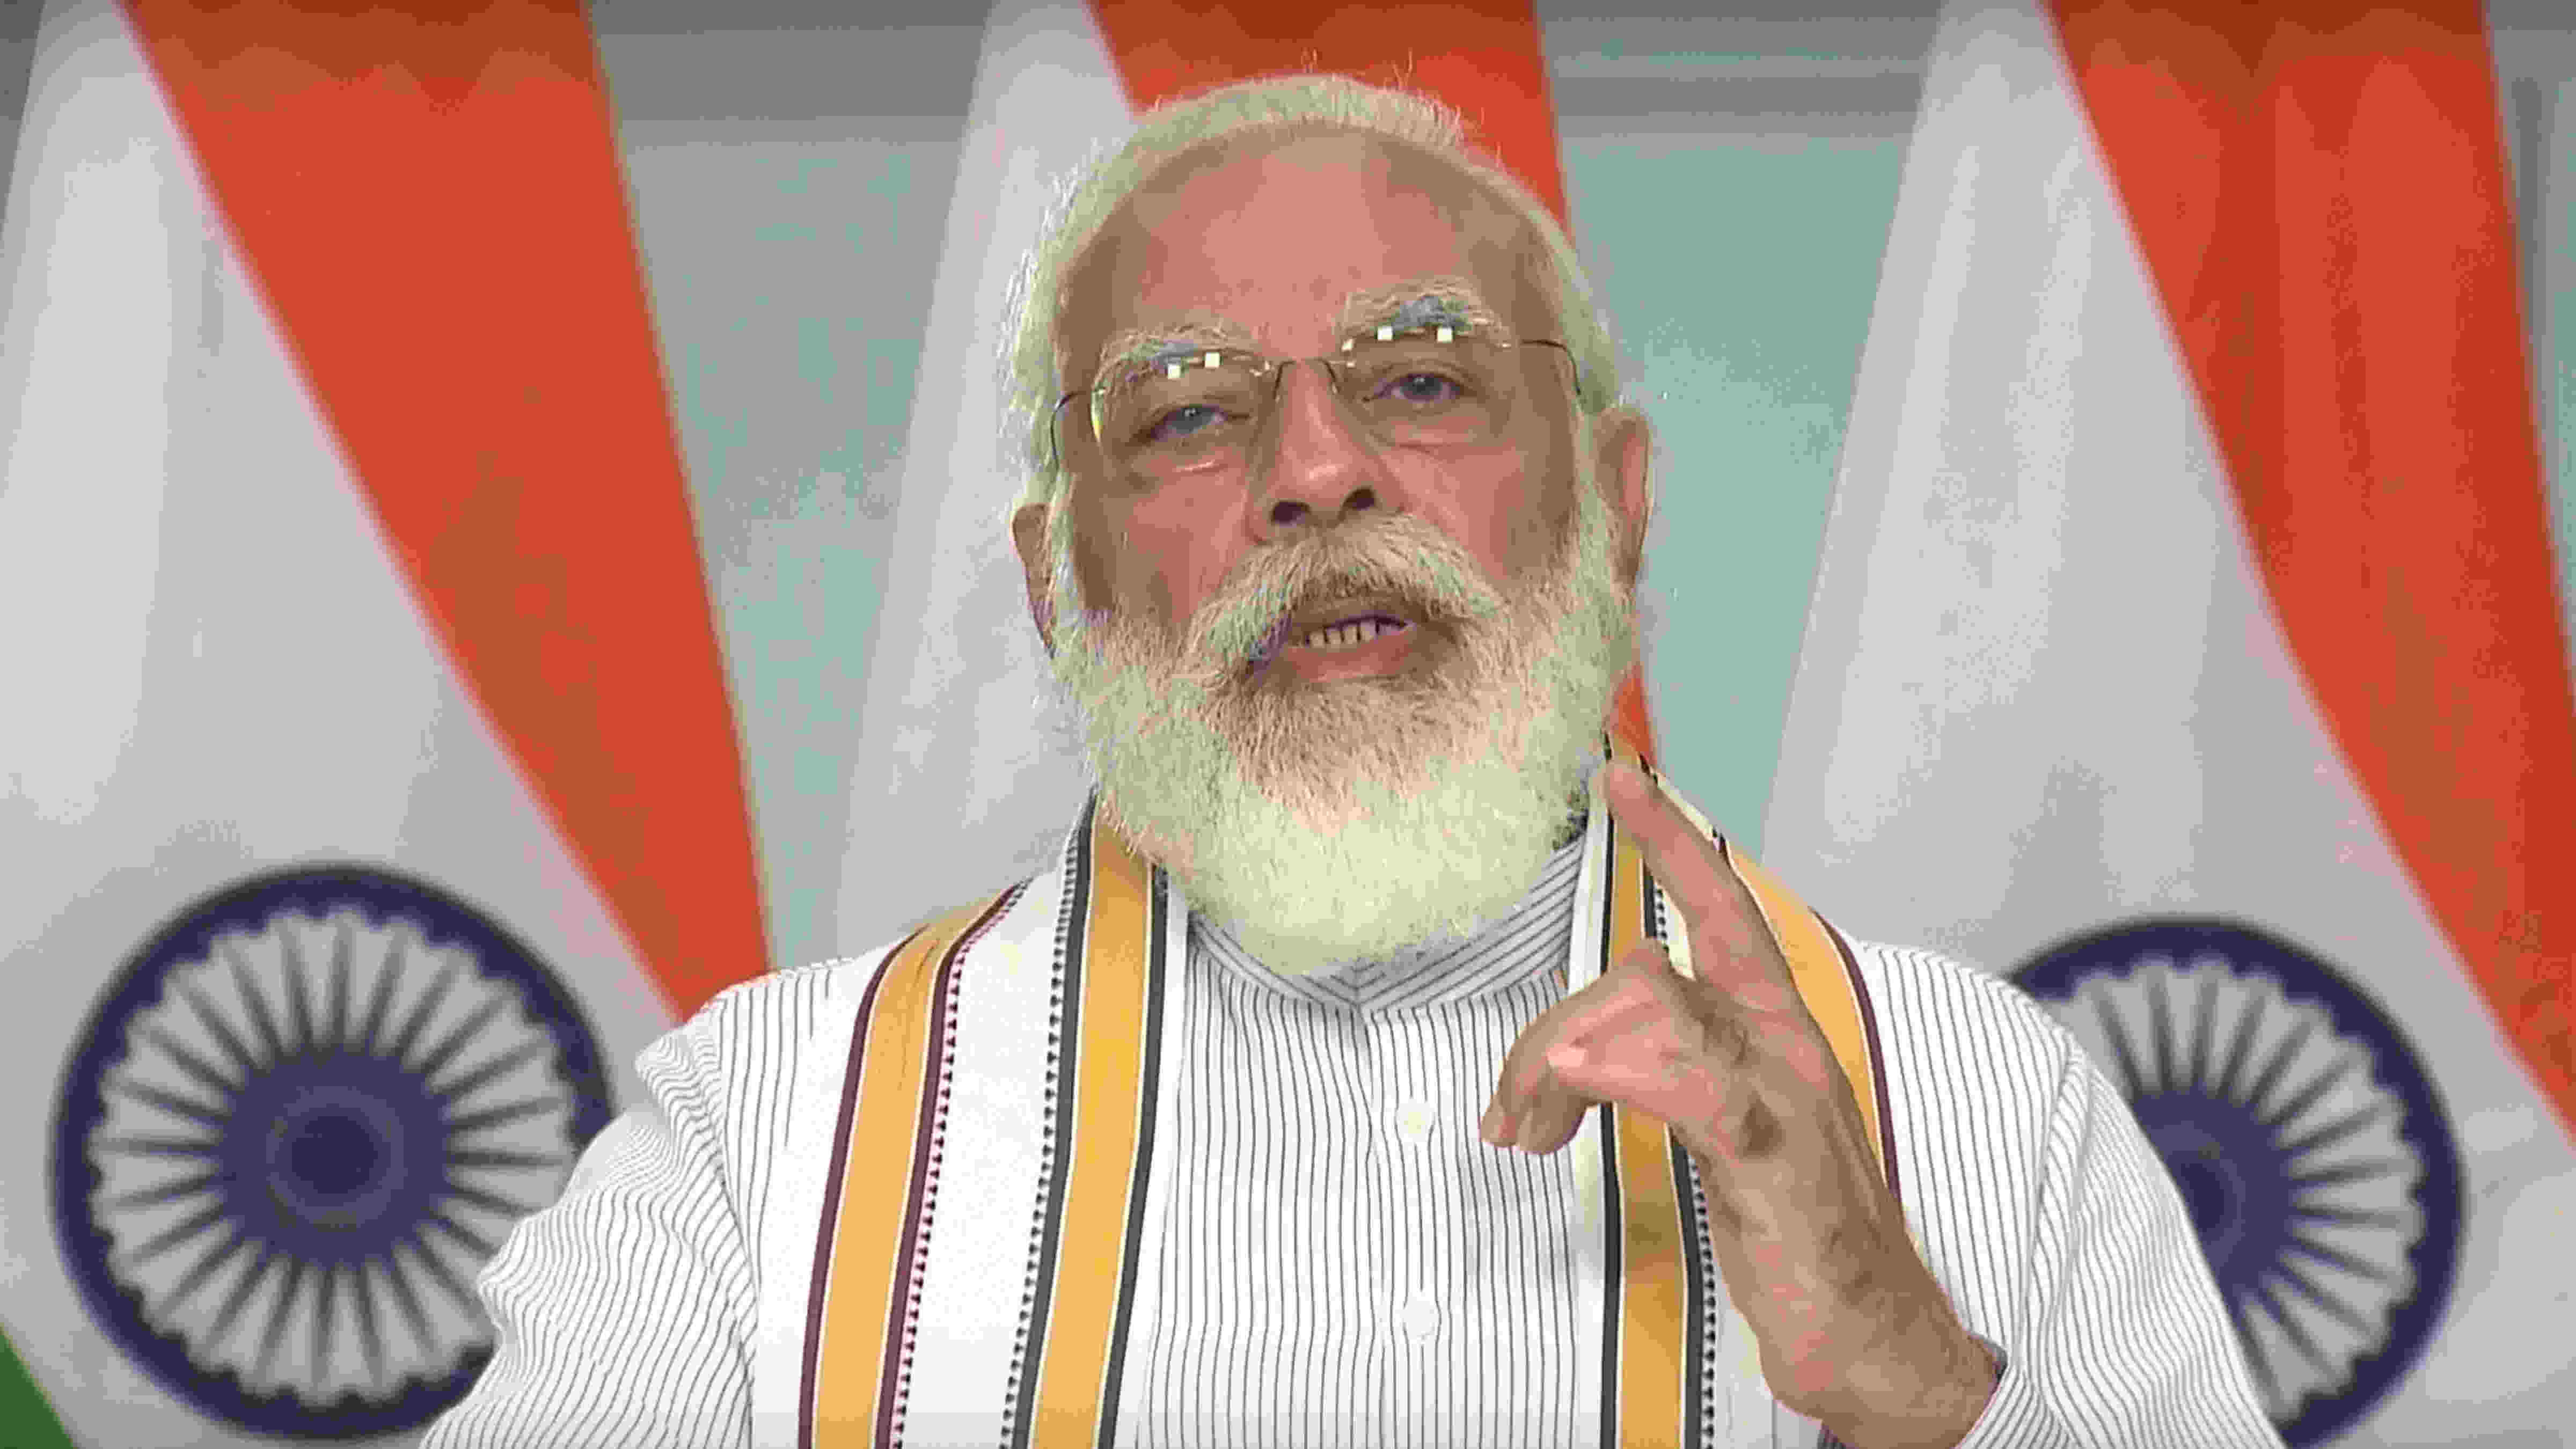 Prime Minister Narendra Modi addresses a conclave on 'School Education in 21st Century' under the National Education Policy (NEP) 2020, through video conferencing, in New Delhi, Friday, Sept. 11, 2020.